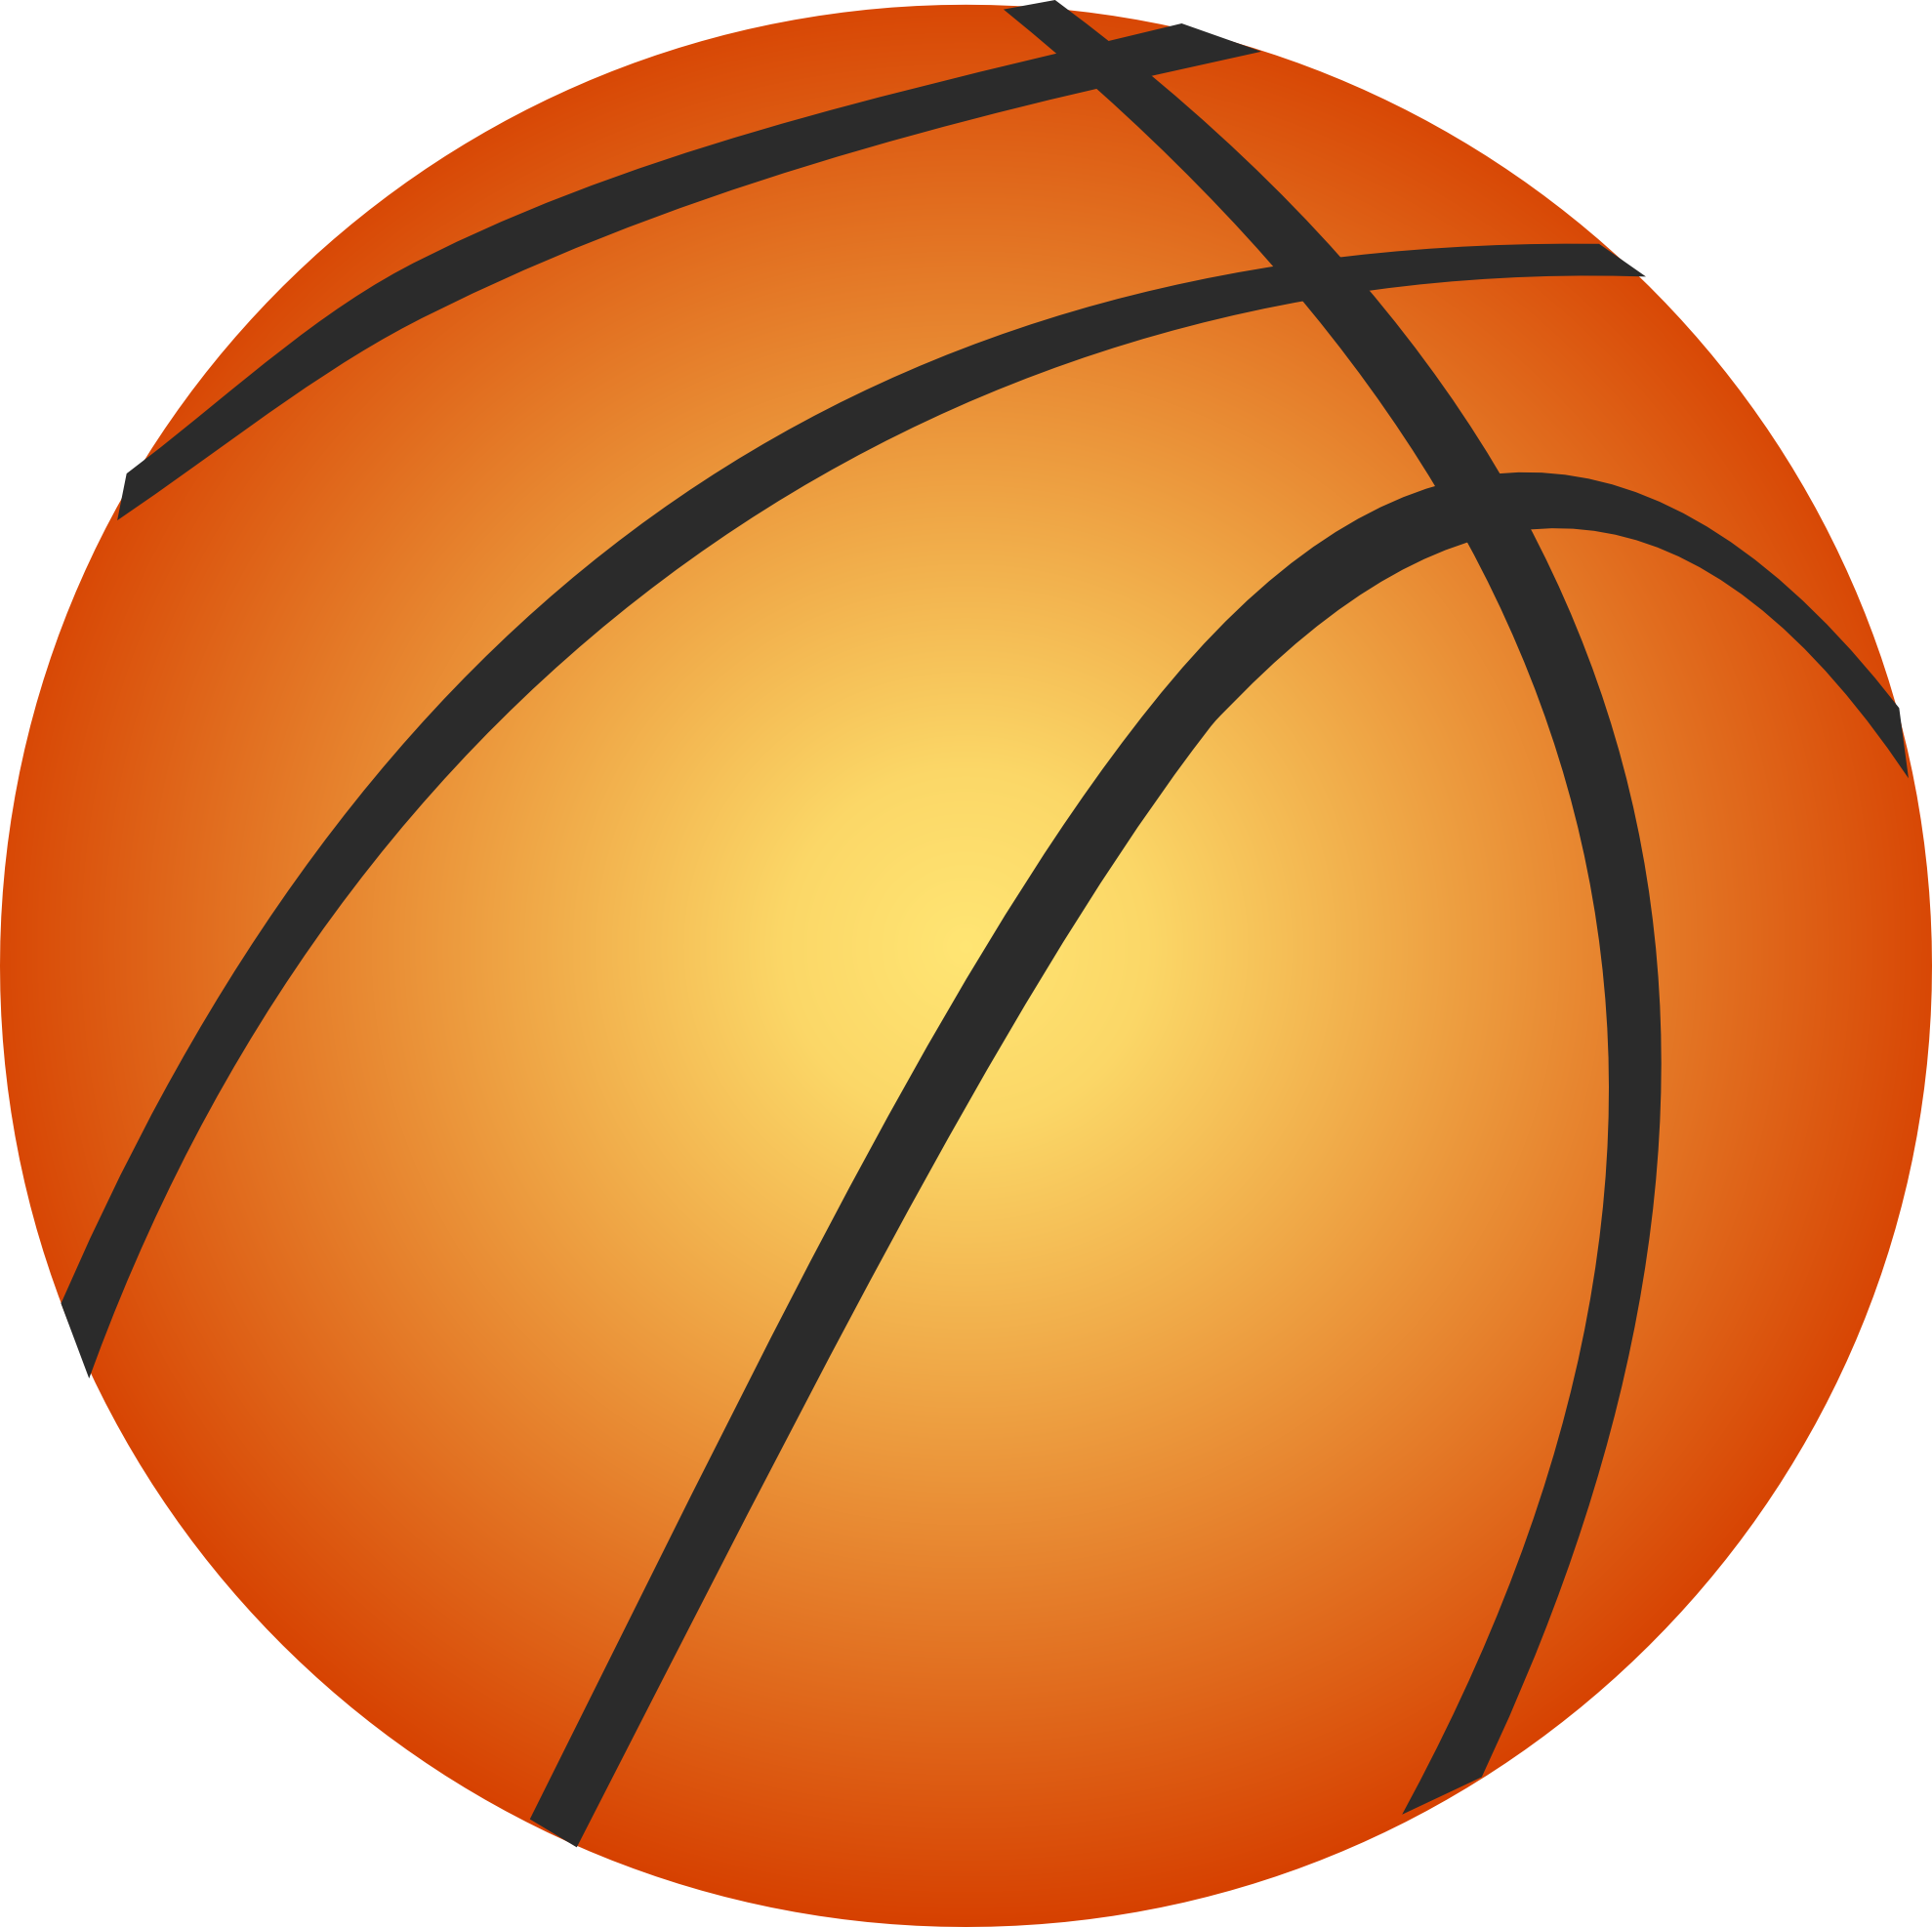 Basketball clipart images black and white picture free download basketball-ball-png-image-1979 - Your Country 105.3KZZX picture free download